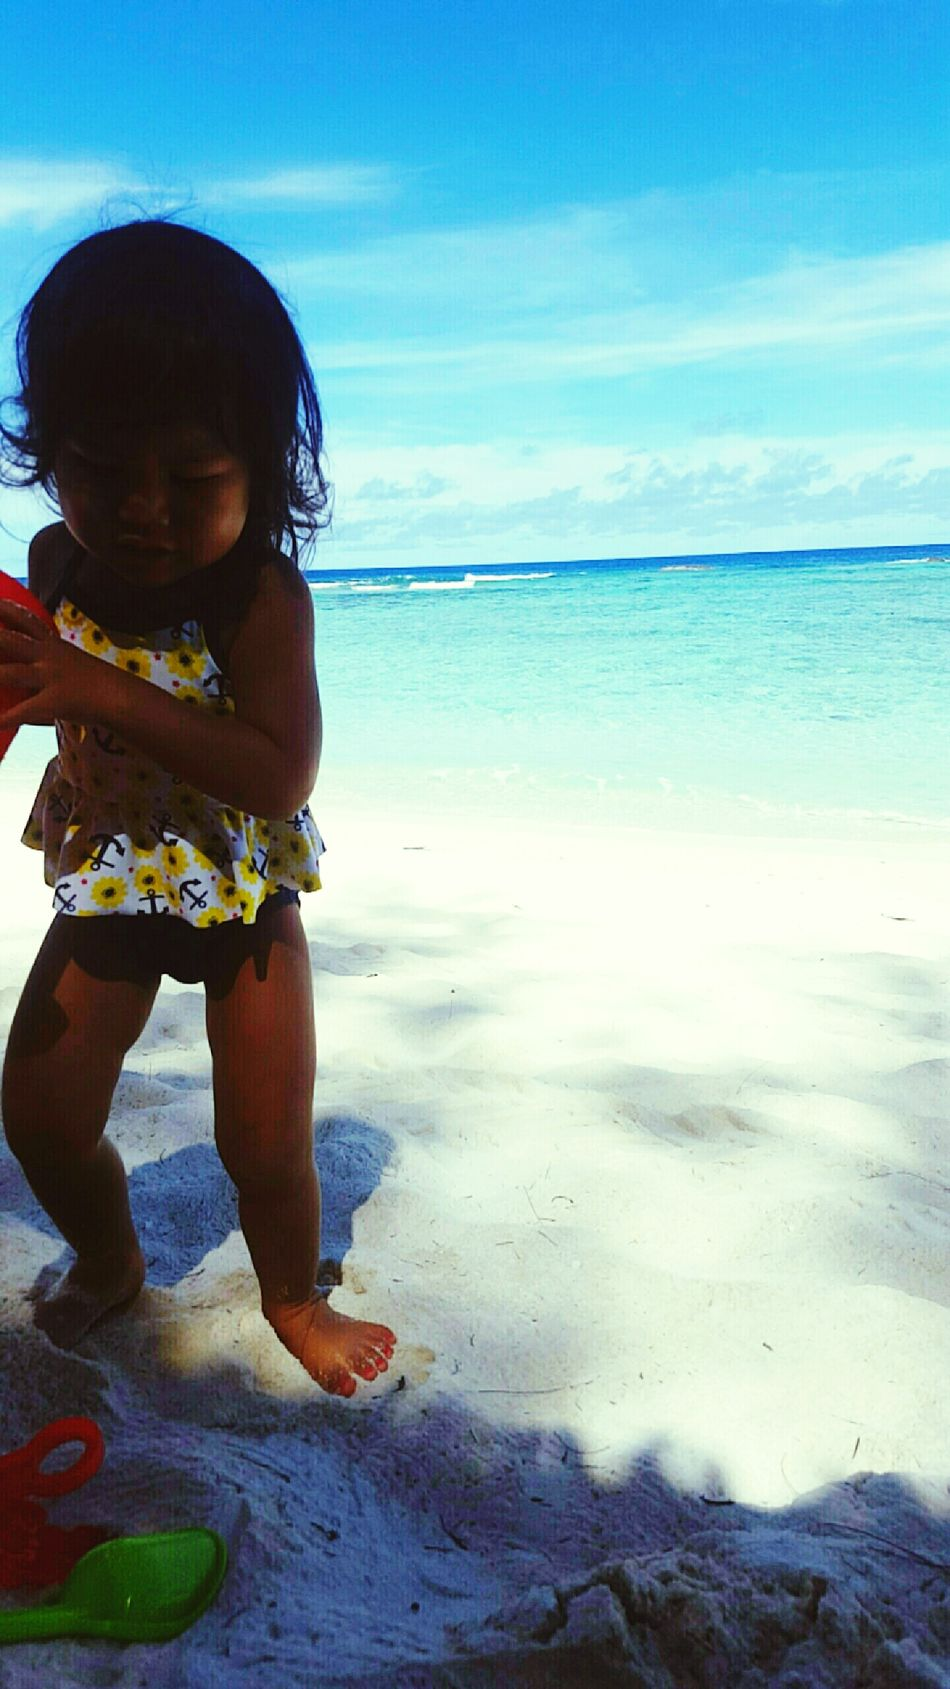 🖖🤘✌ Beach Leisure Activity Lifestyles Childhood Beauty In Nature Sky Outdoors Hanging Out Cheeks Crazy Baby I Love Her So Much❤ Island Life Babygirl Lovelovelove Life Is A Beach GUdlife Guamskies Crazy Hair Beach Photography Guambeaches GUAM..a Place I Call Home Where America's Day Begins Cheers 🍻 Relaxing Home